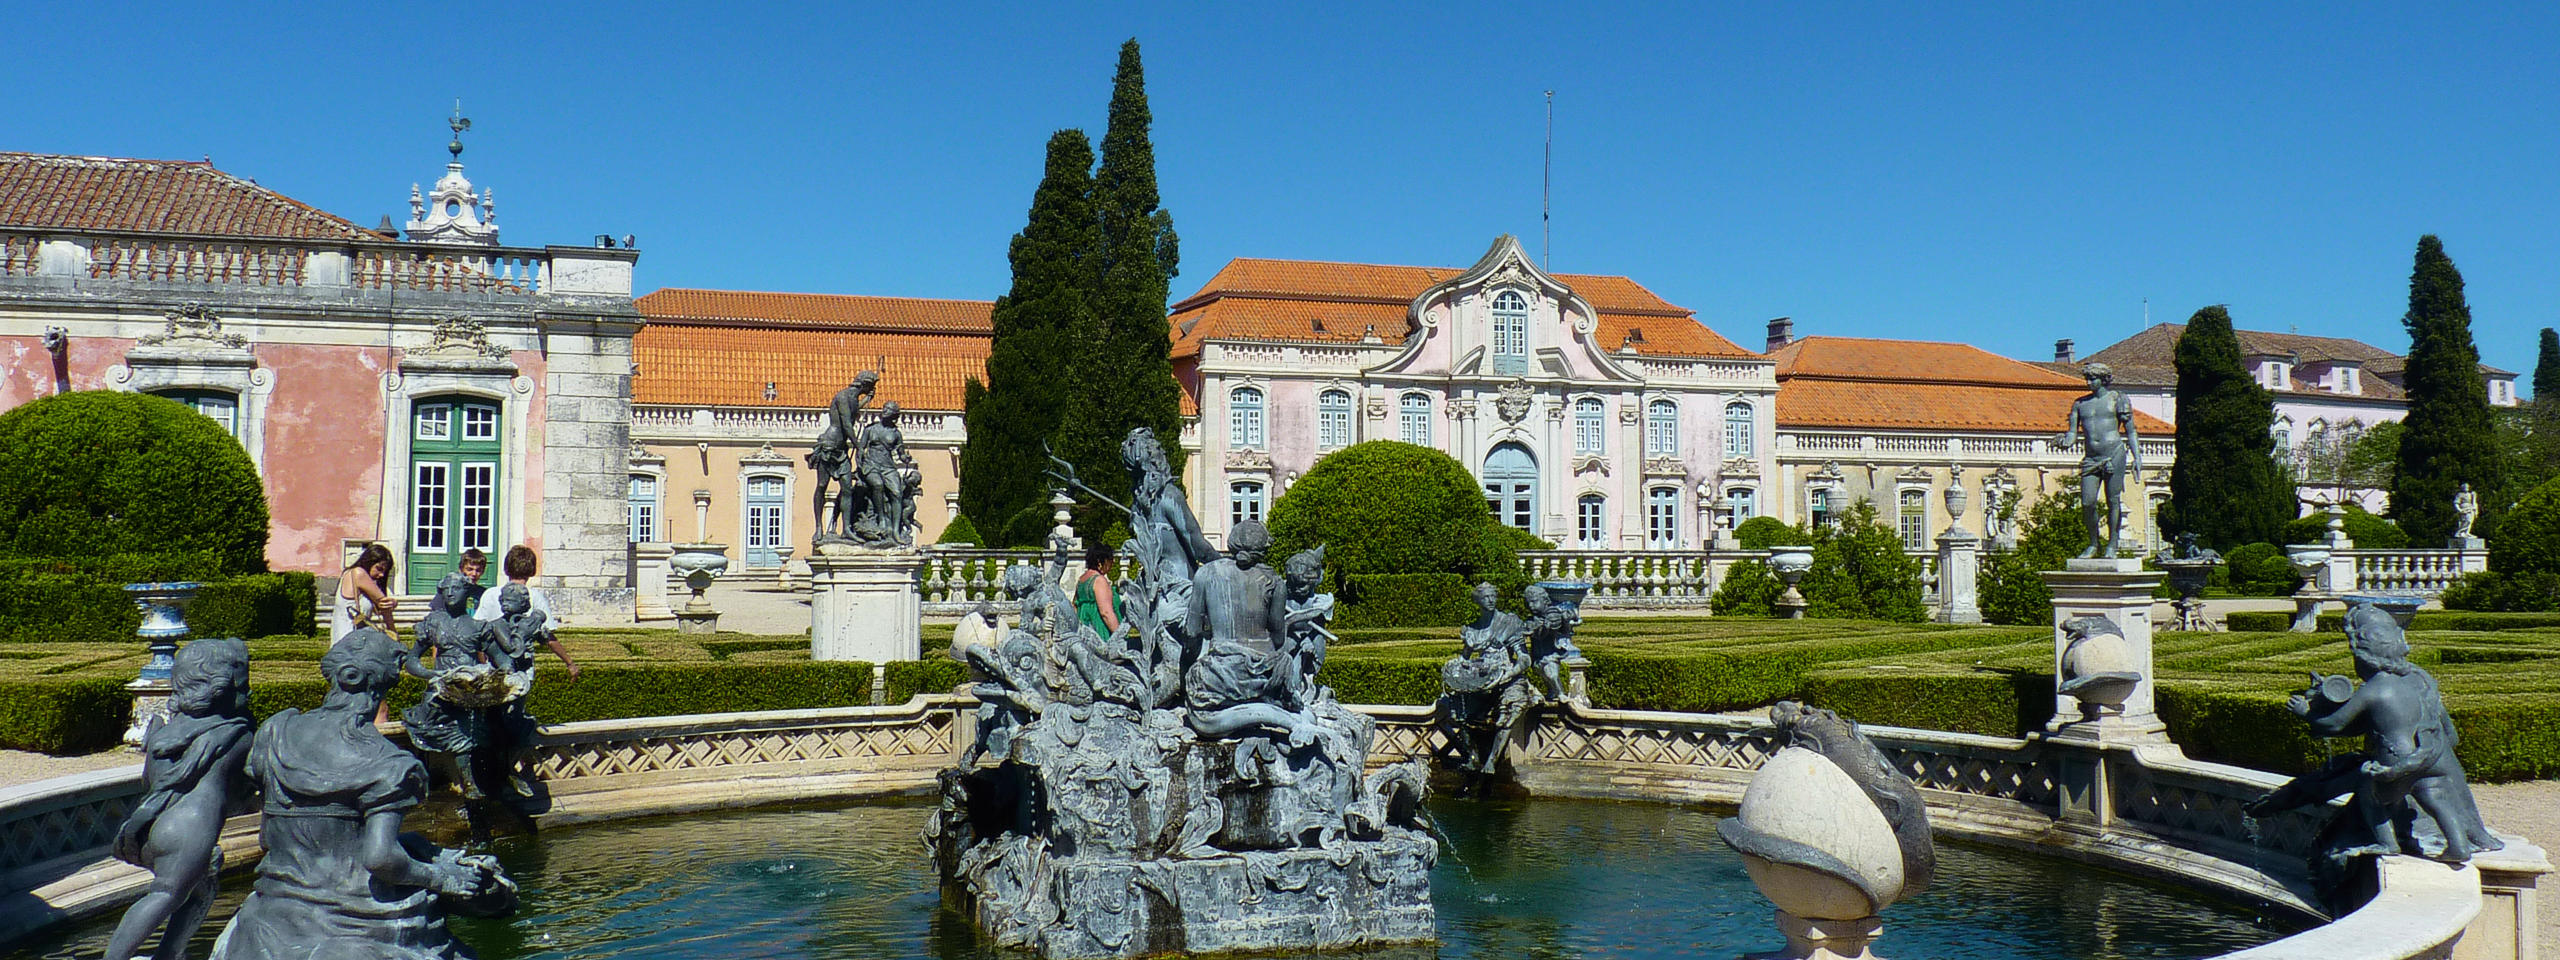 Queluz Palace fountain and garden